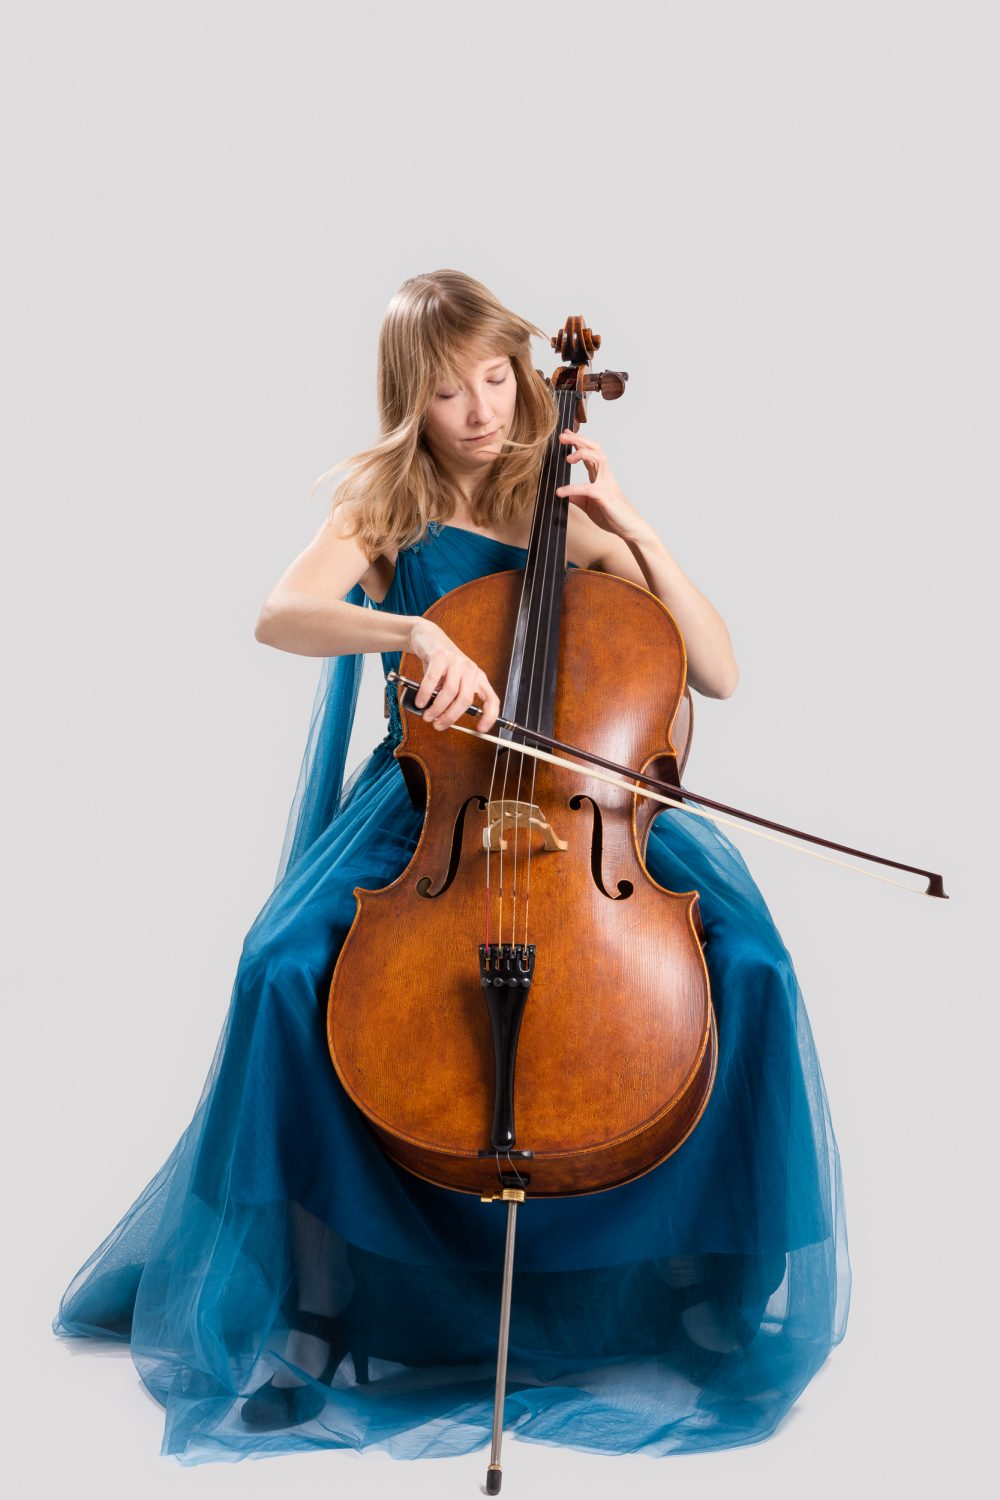 Isabel Gehweiler playing her cello in blue dress